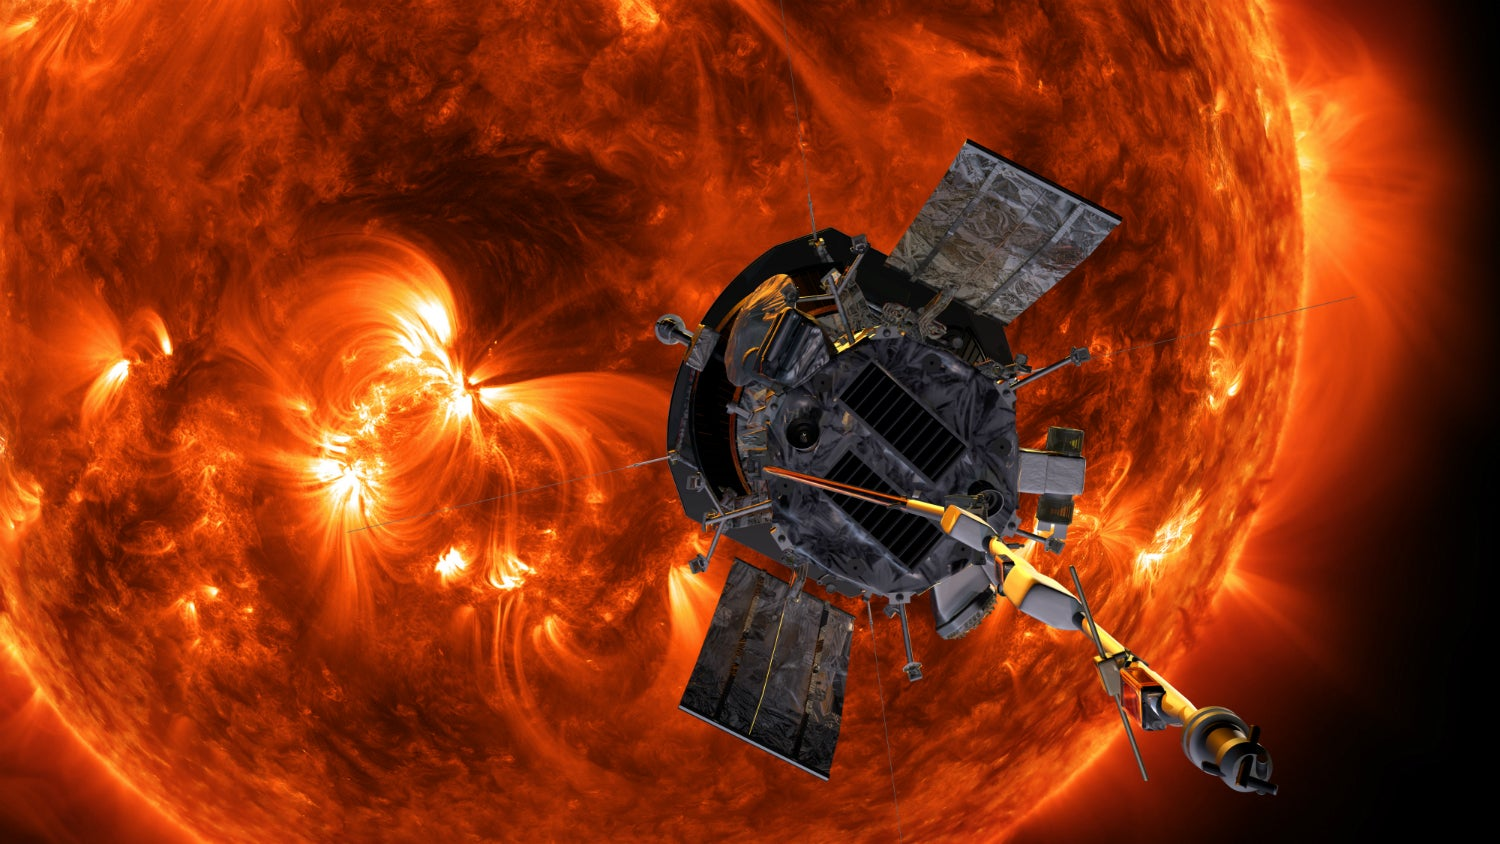 NASA's Parker Solar Probe just smashed two all-time records on its way to the sun